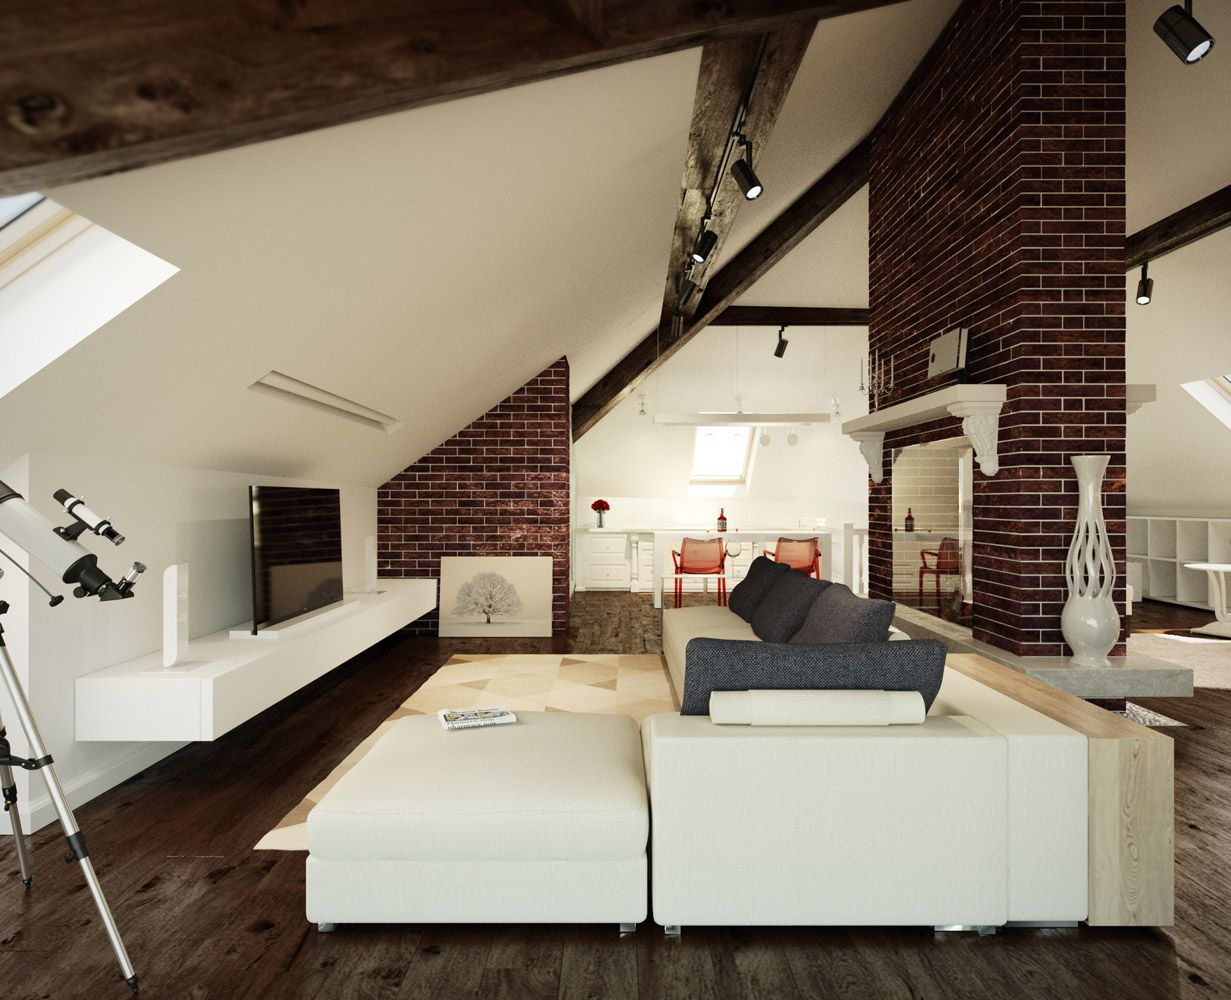 20 of the Most Incredible Attics You\u0027ve Ever Seen | Bricks, Lofts ...